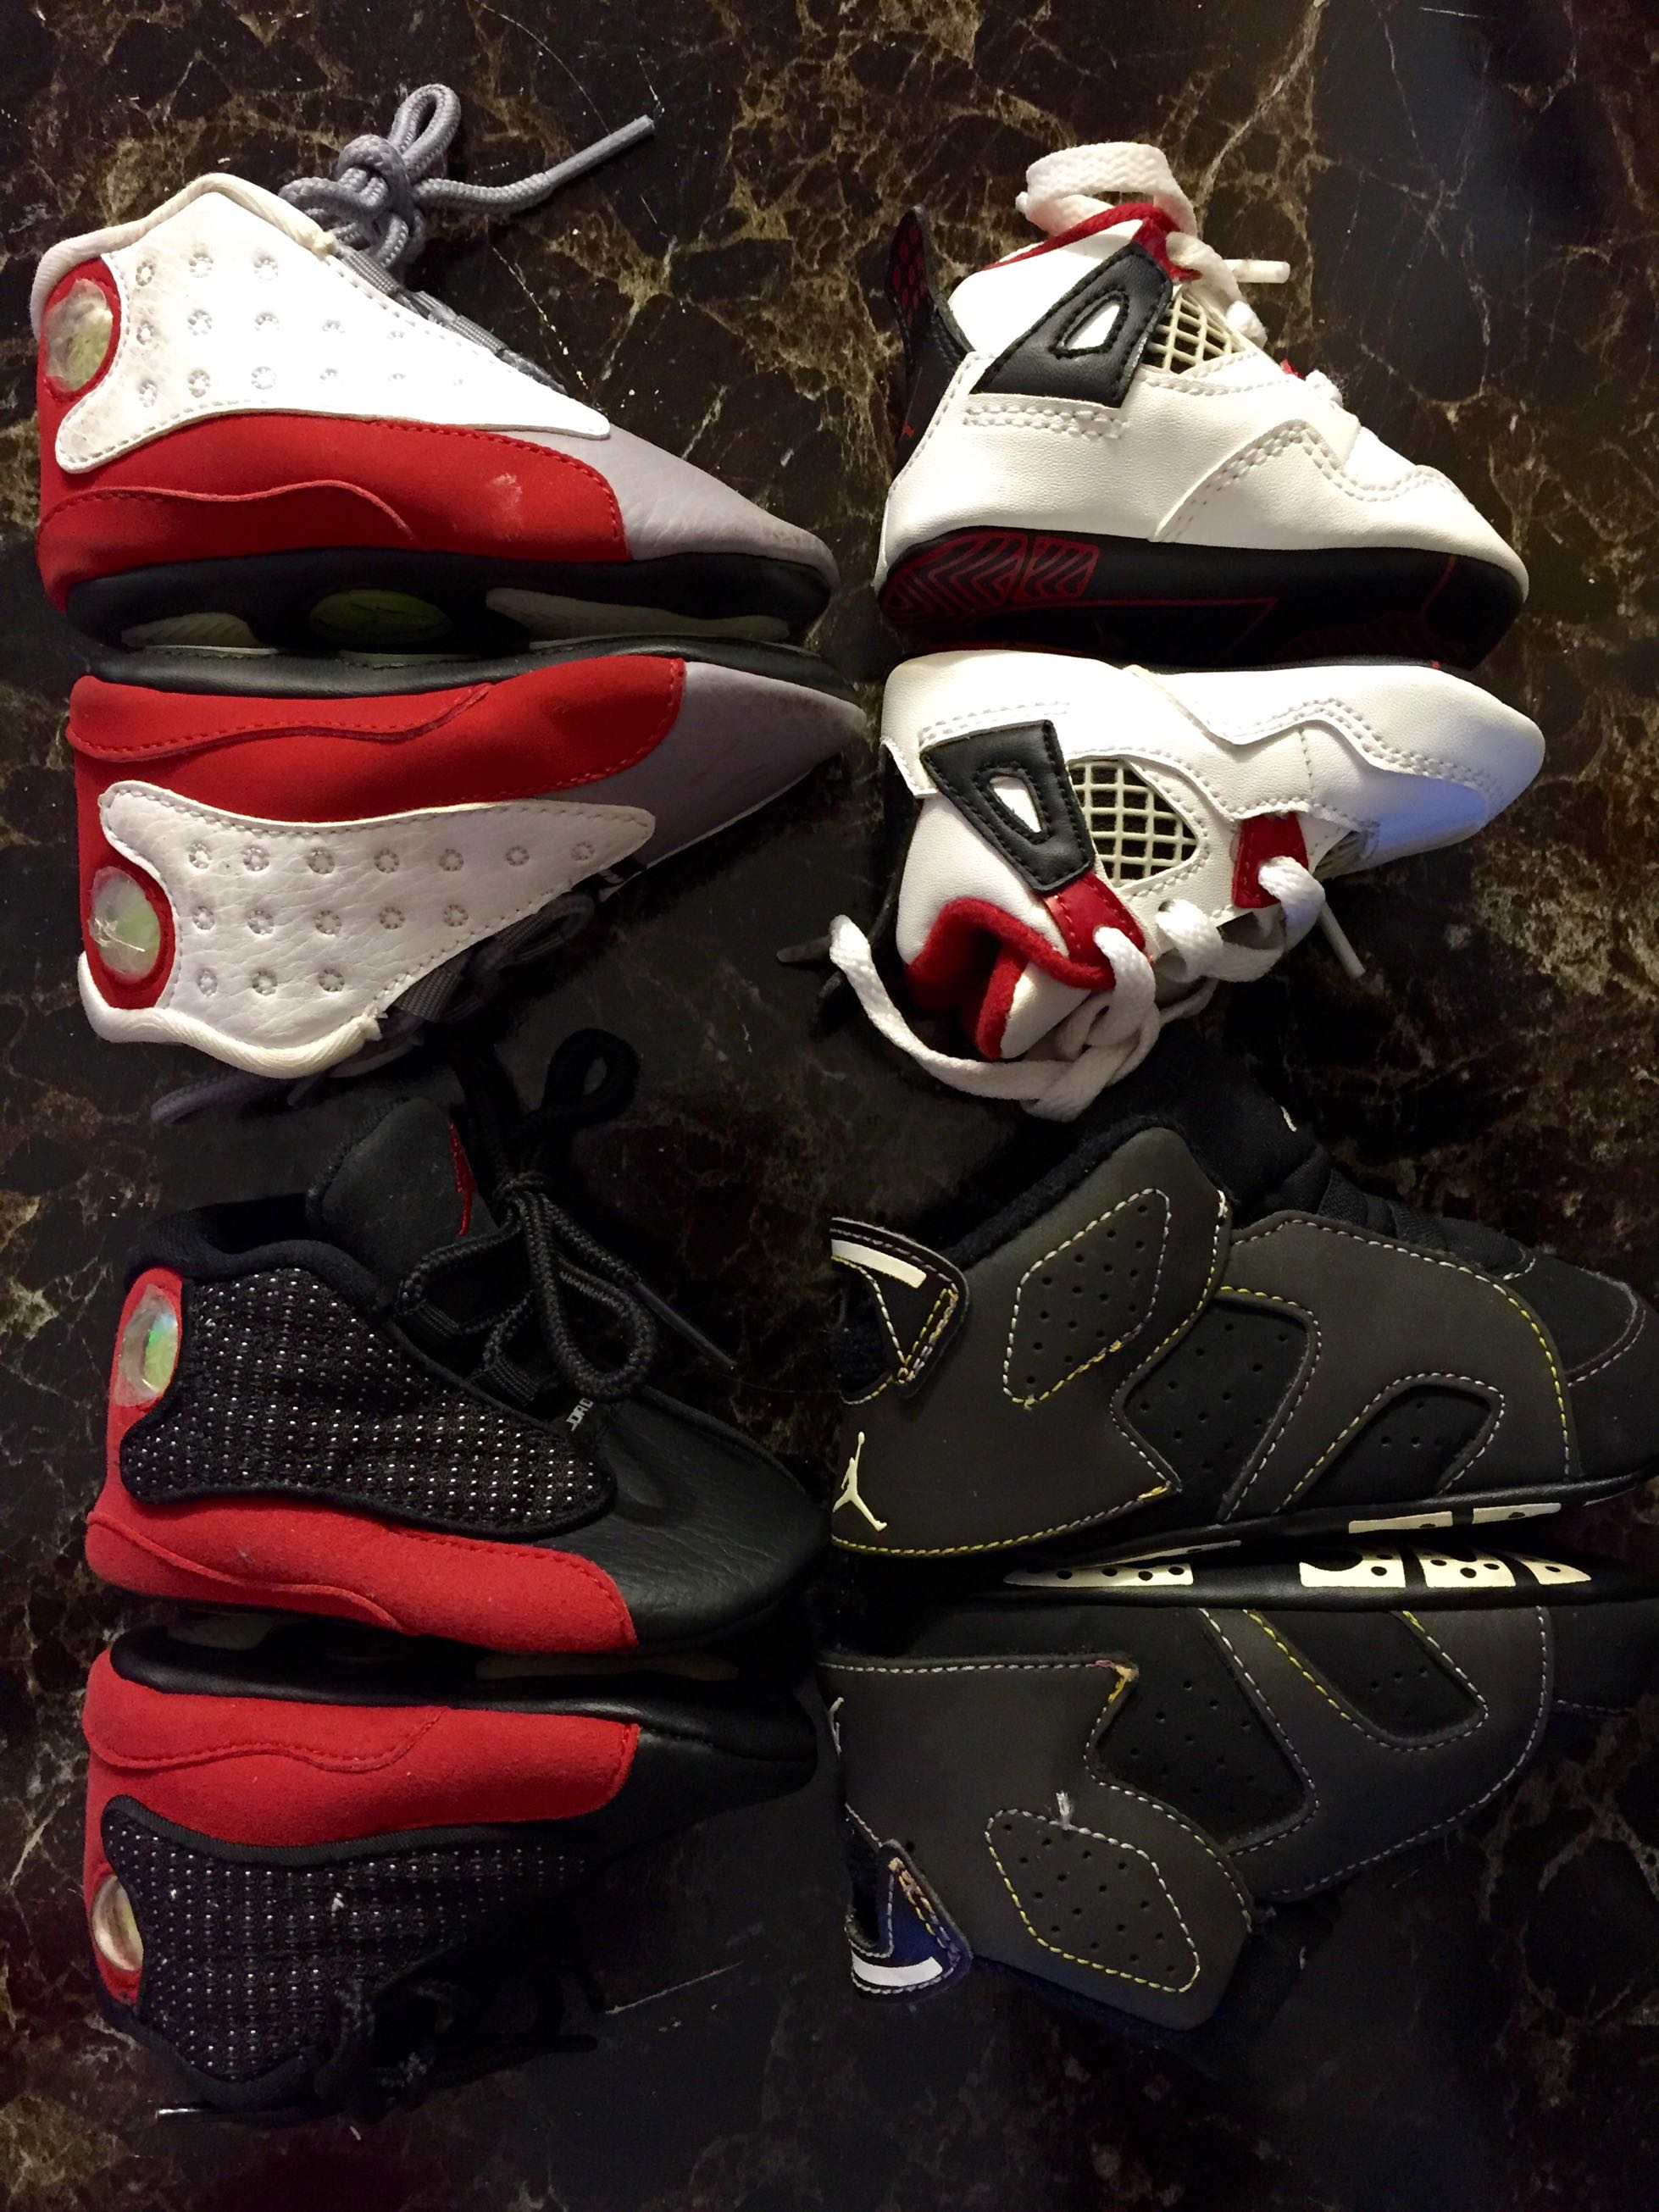 Crib jordans for sale - Like New Infant Air Jordan Retro They Come With Beanies Just No Boxes All 100